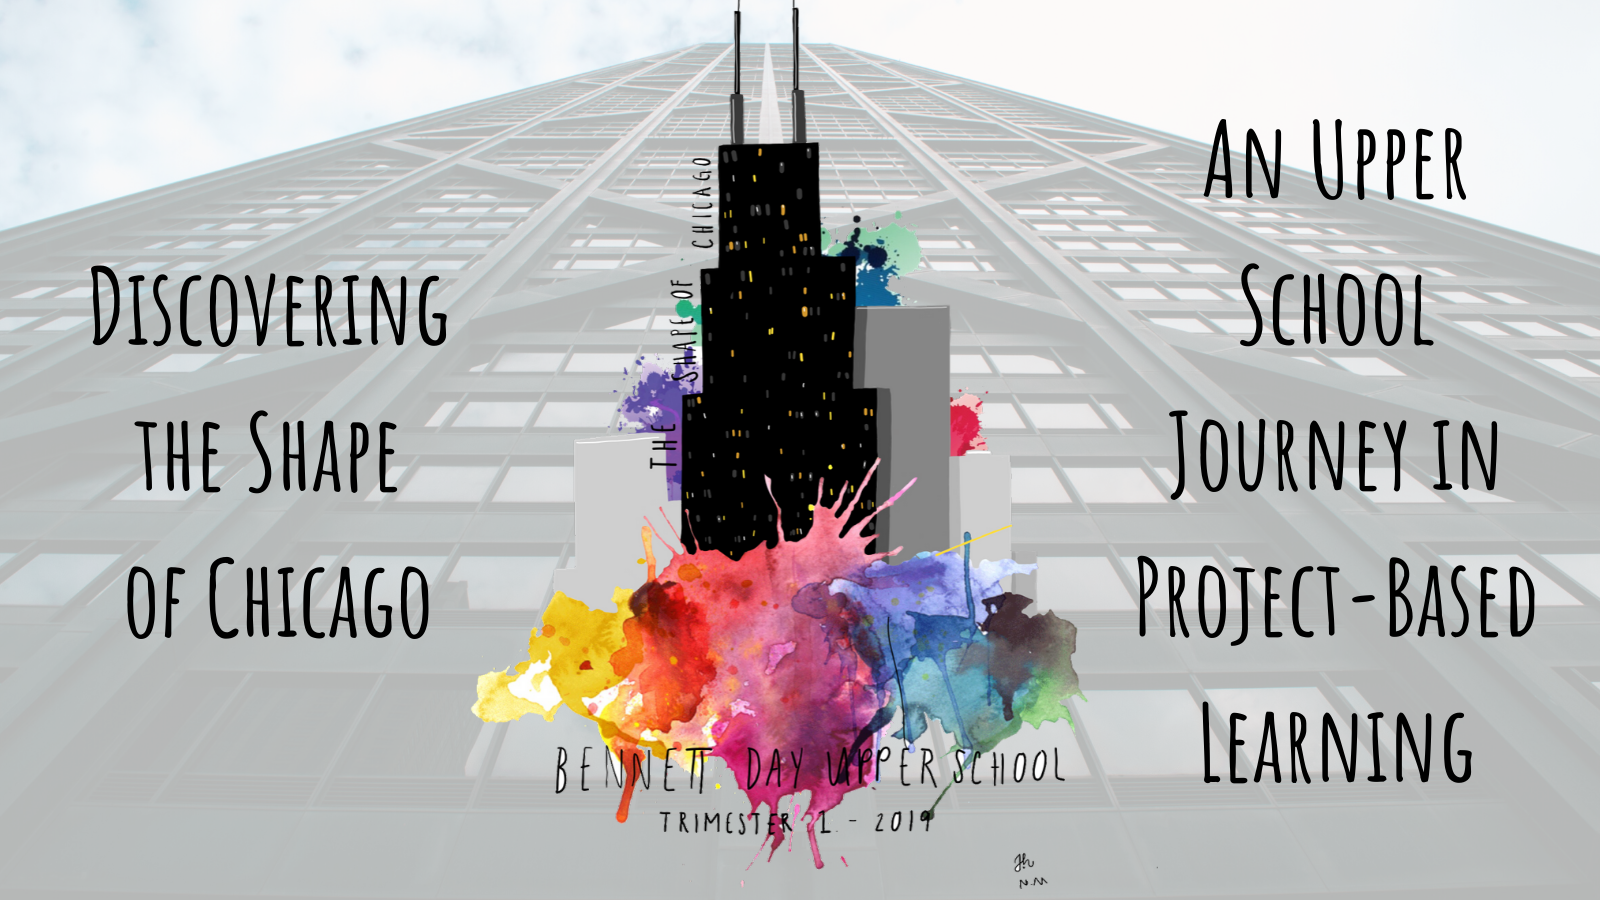 Discovering the Shape of Chicago: An Upper School Journey in Project-Based Learning